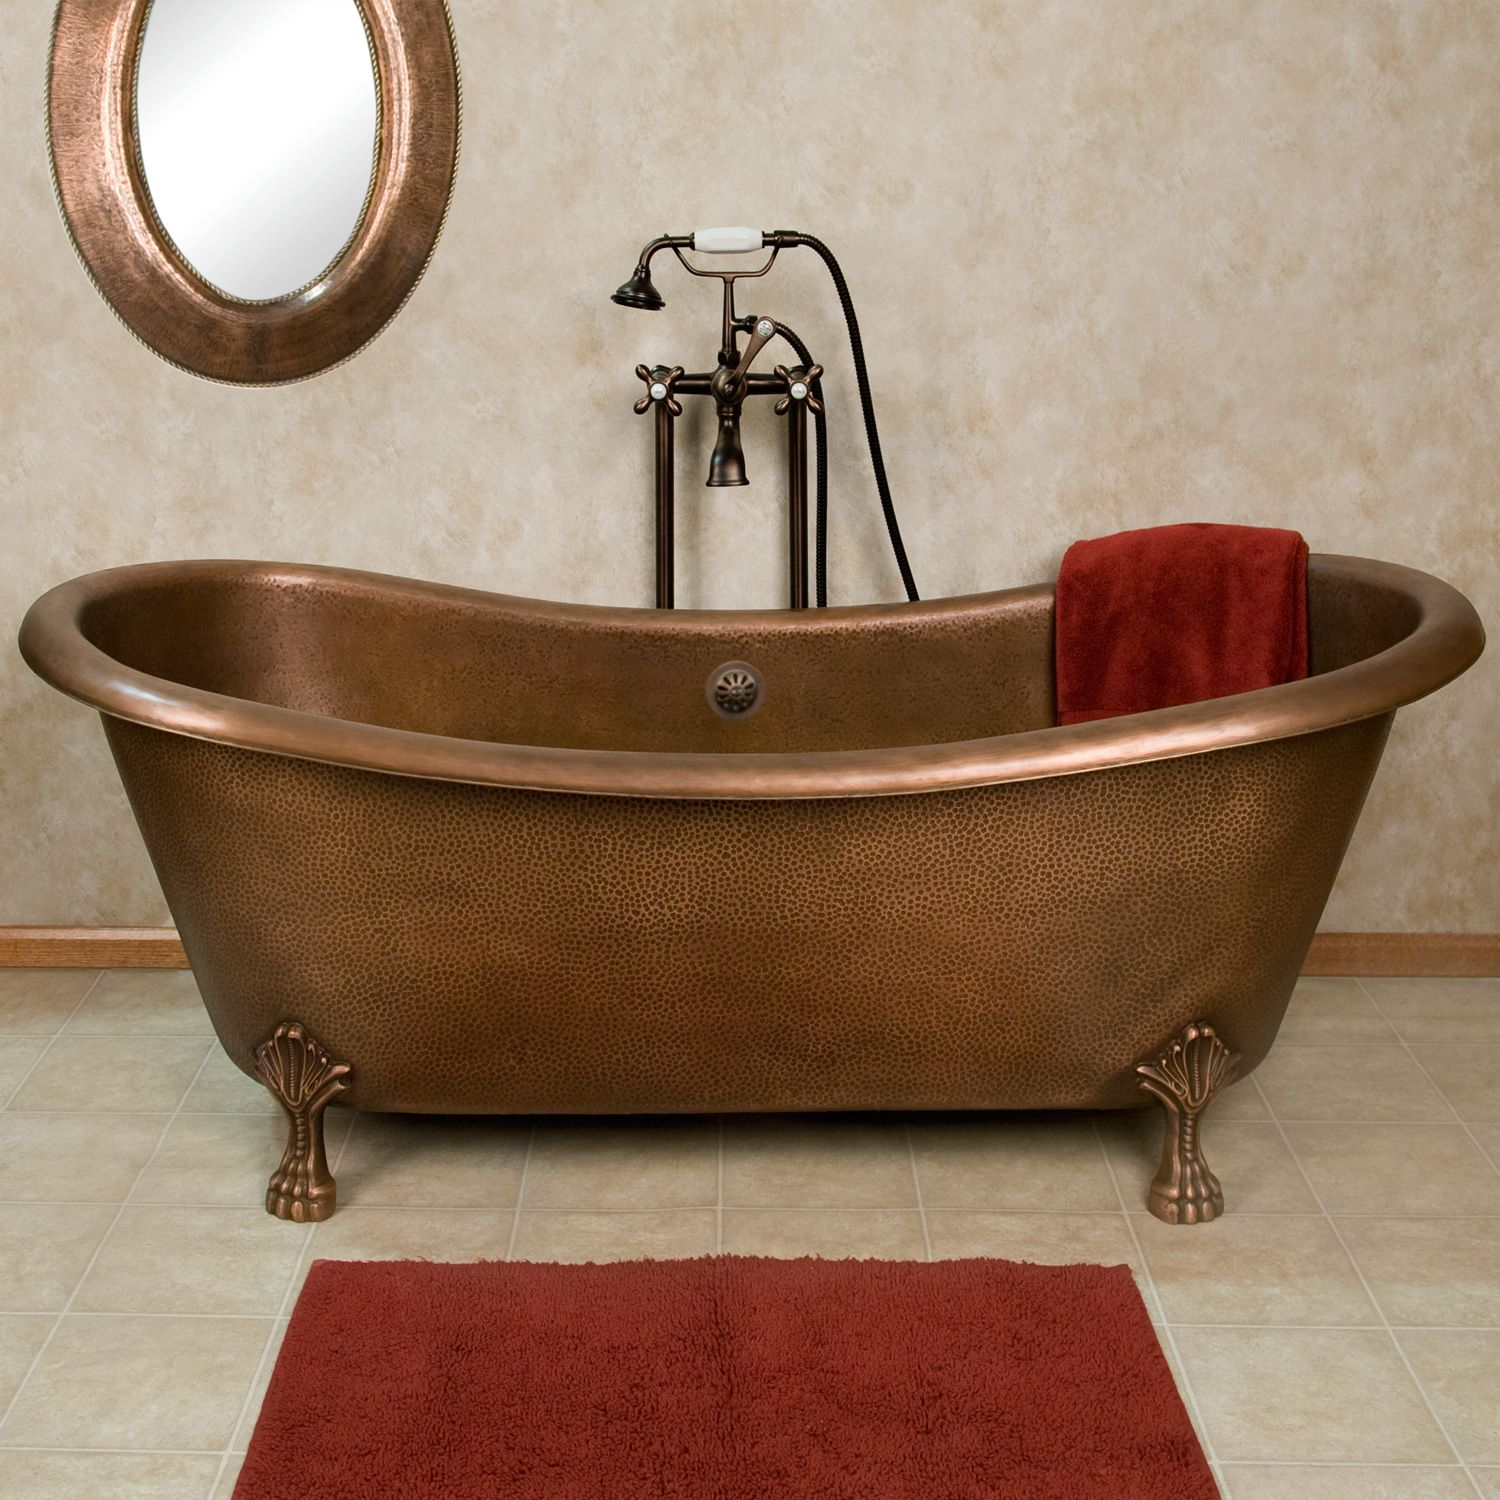 tubs tub black large enameled clawfoot cast metal and exterior vintage foot iron for small prices bathrooms claw bathtub ball bathtubs